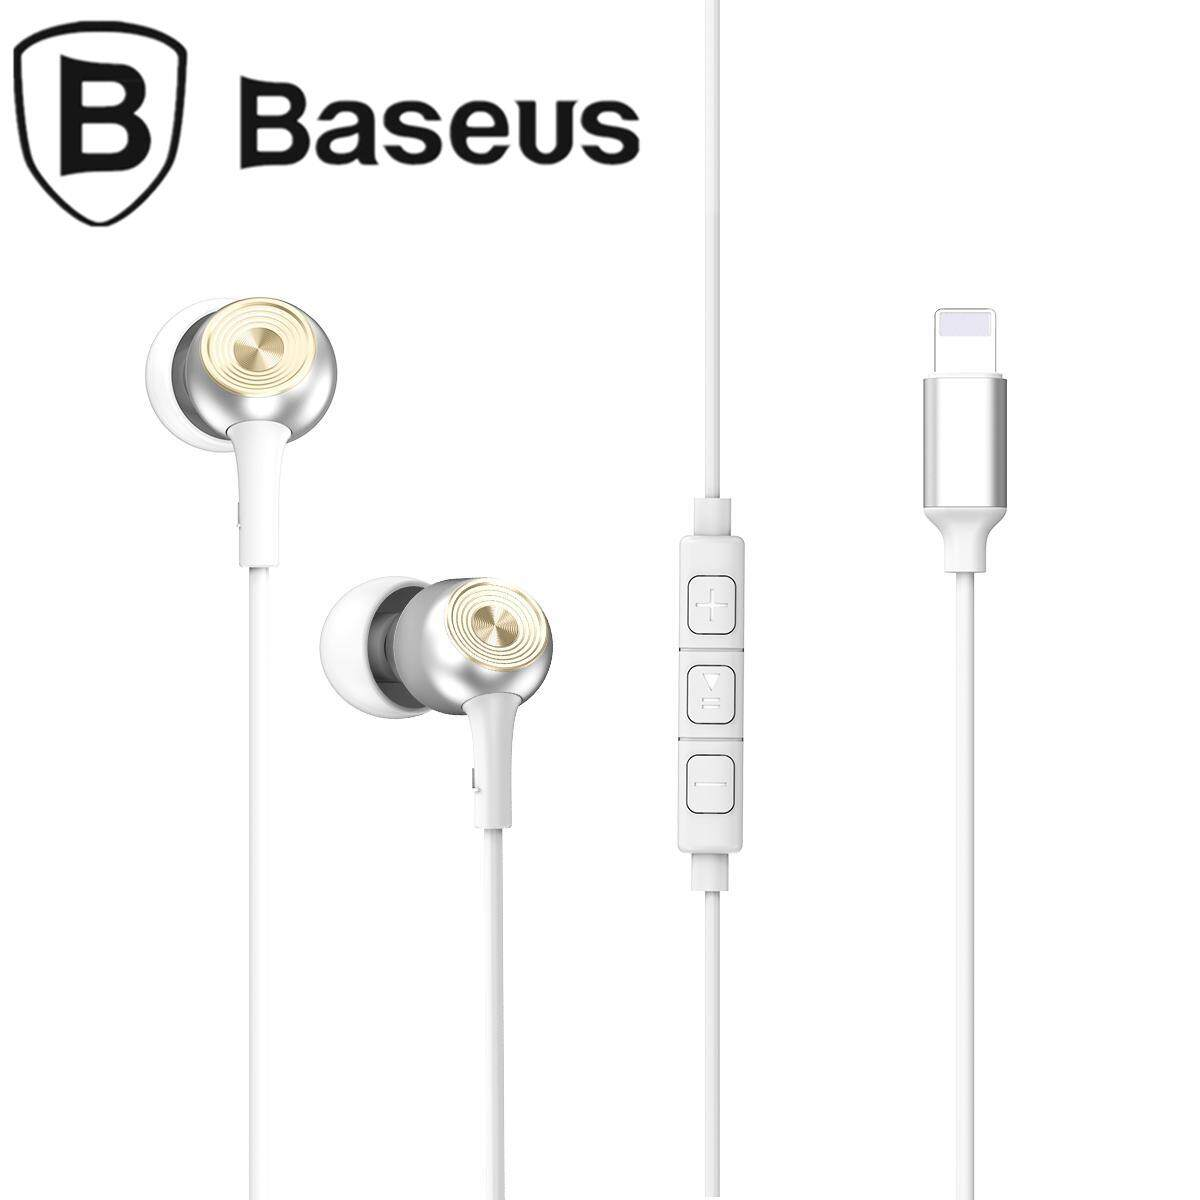 BASEUS Encok P02 Lightning 8-pin Wired Voice Control Earphone Headphone  with Mic for iPhone 3c767f370987a